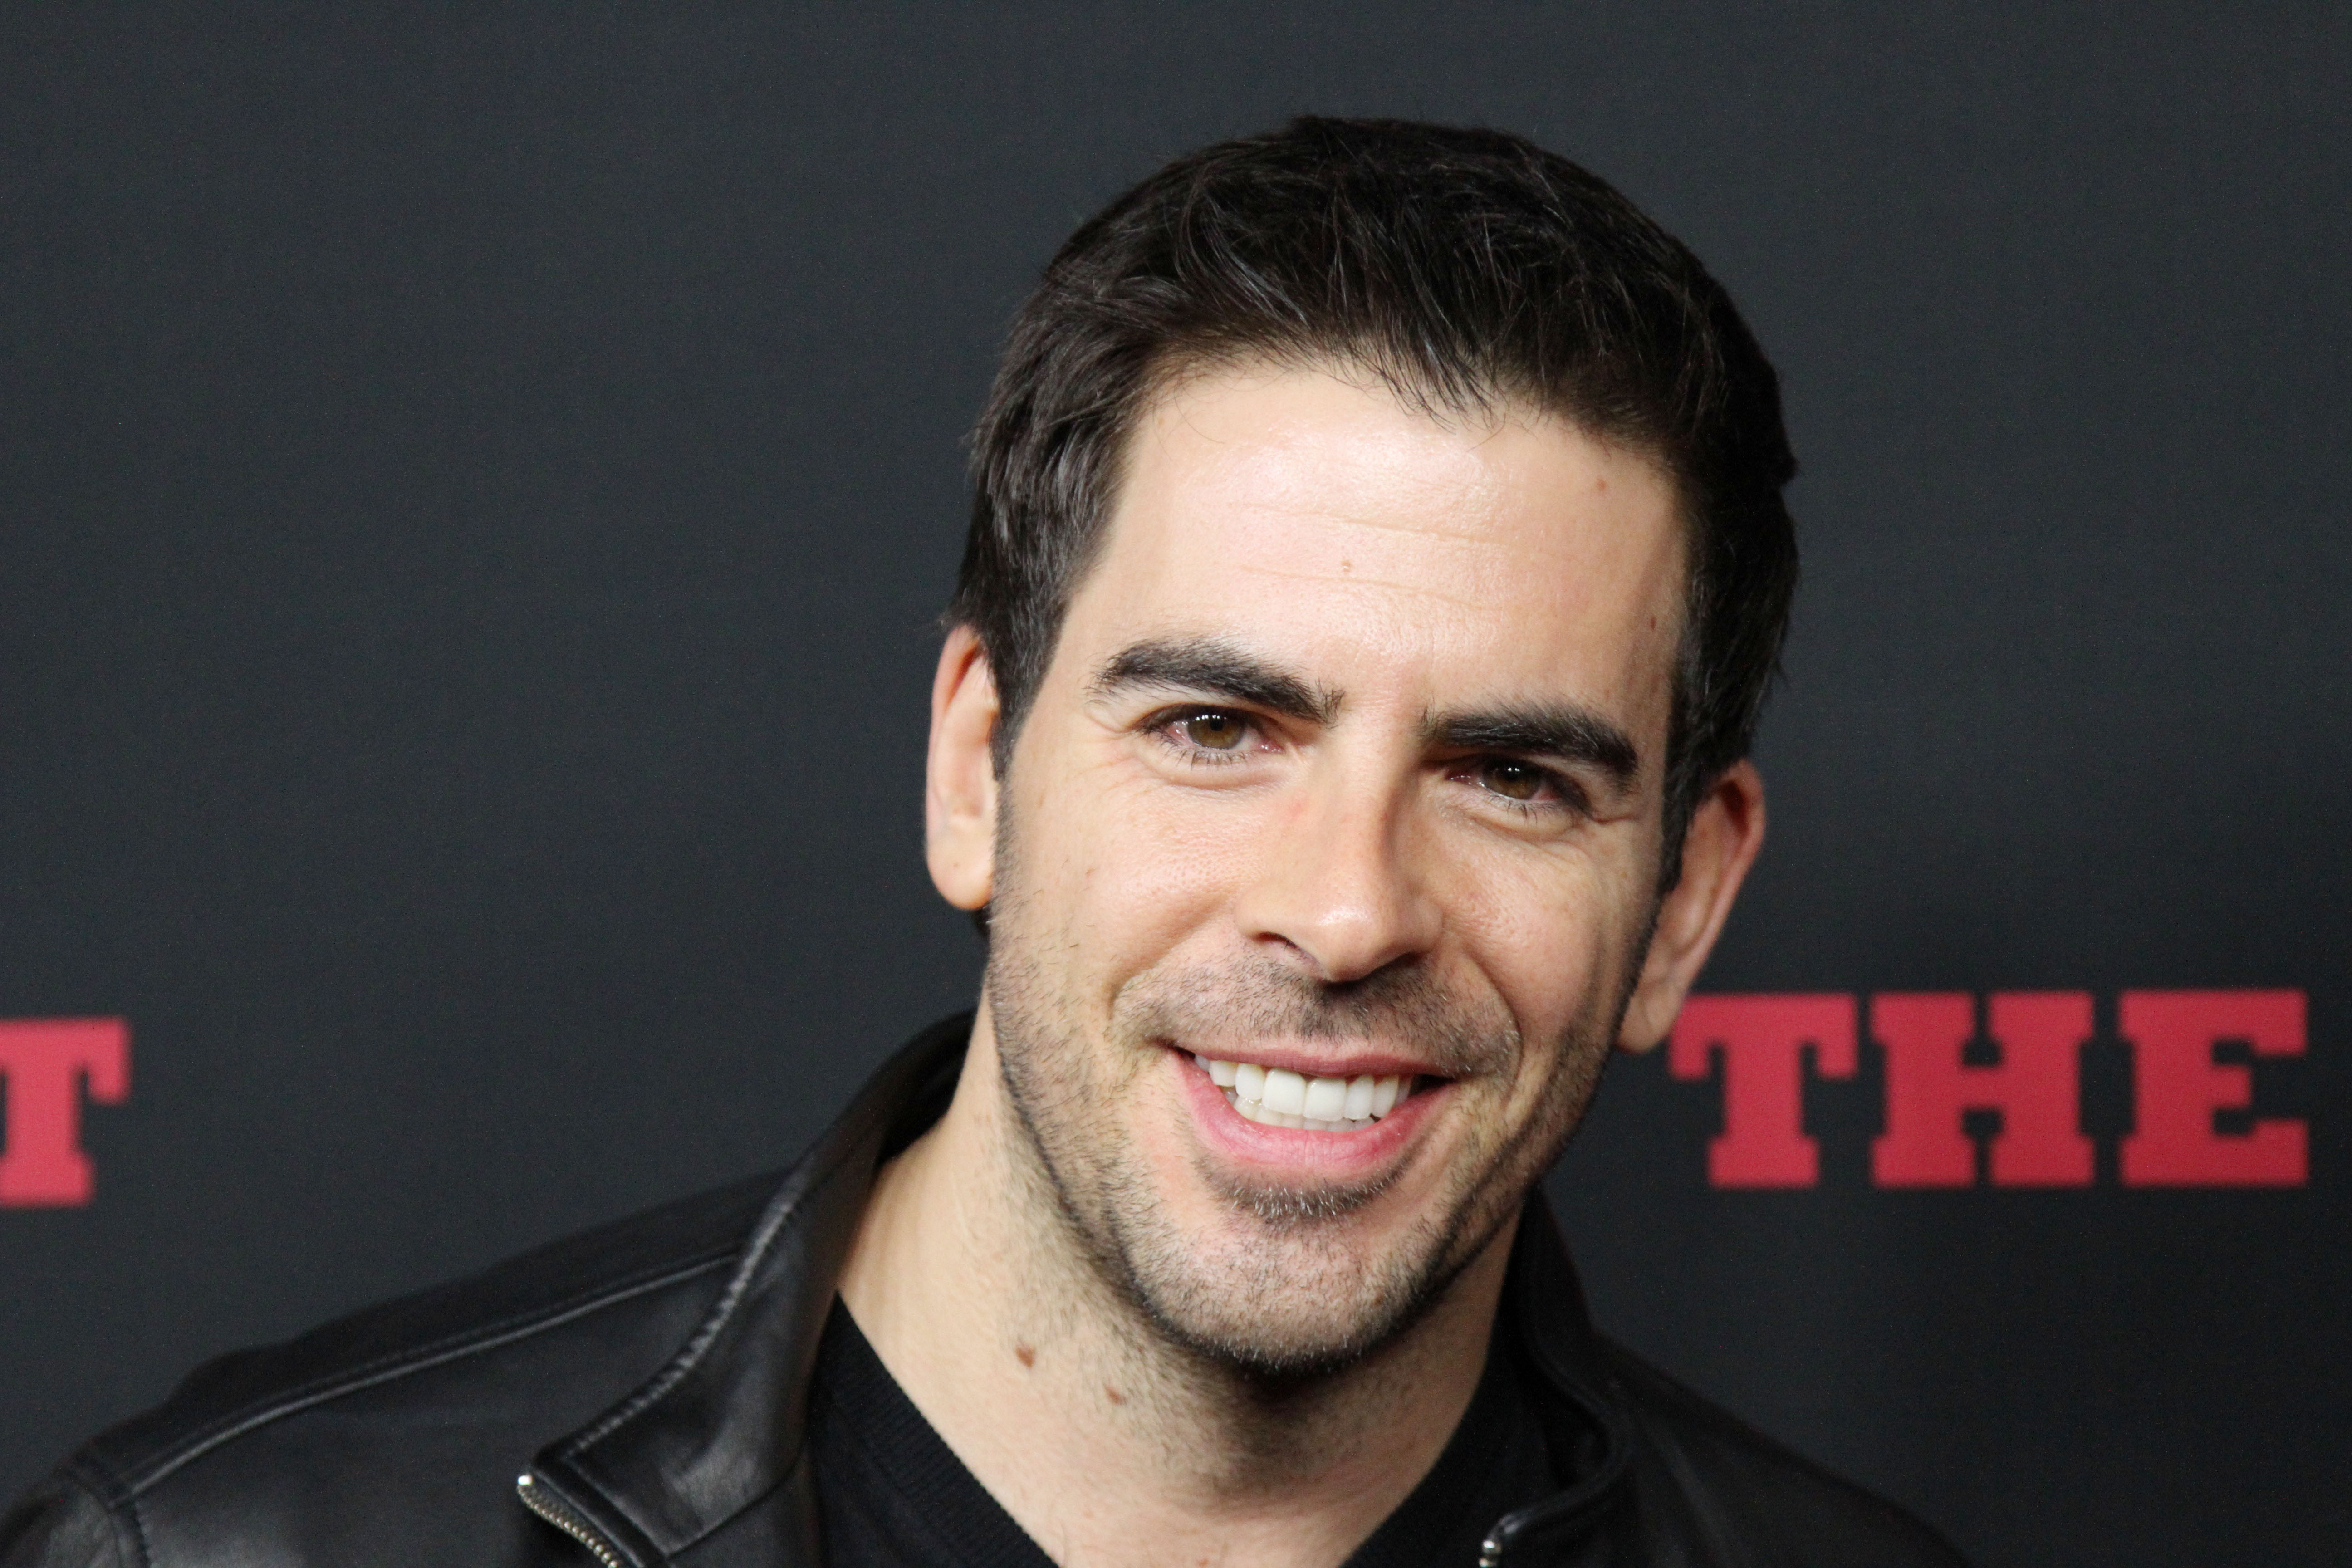 'Borderlands': Filmmaker Eli Roth Takes Aim at First Video-Game Movie Adaptation